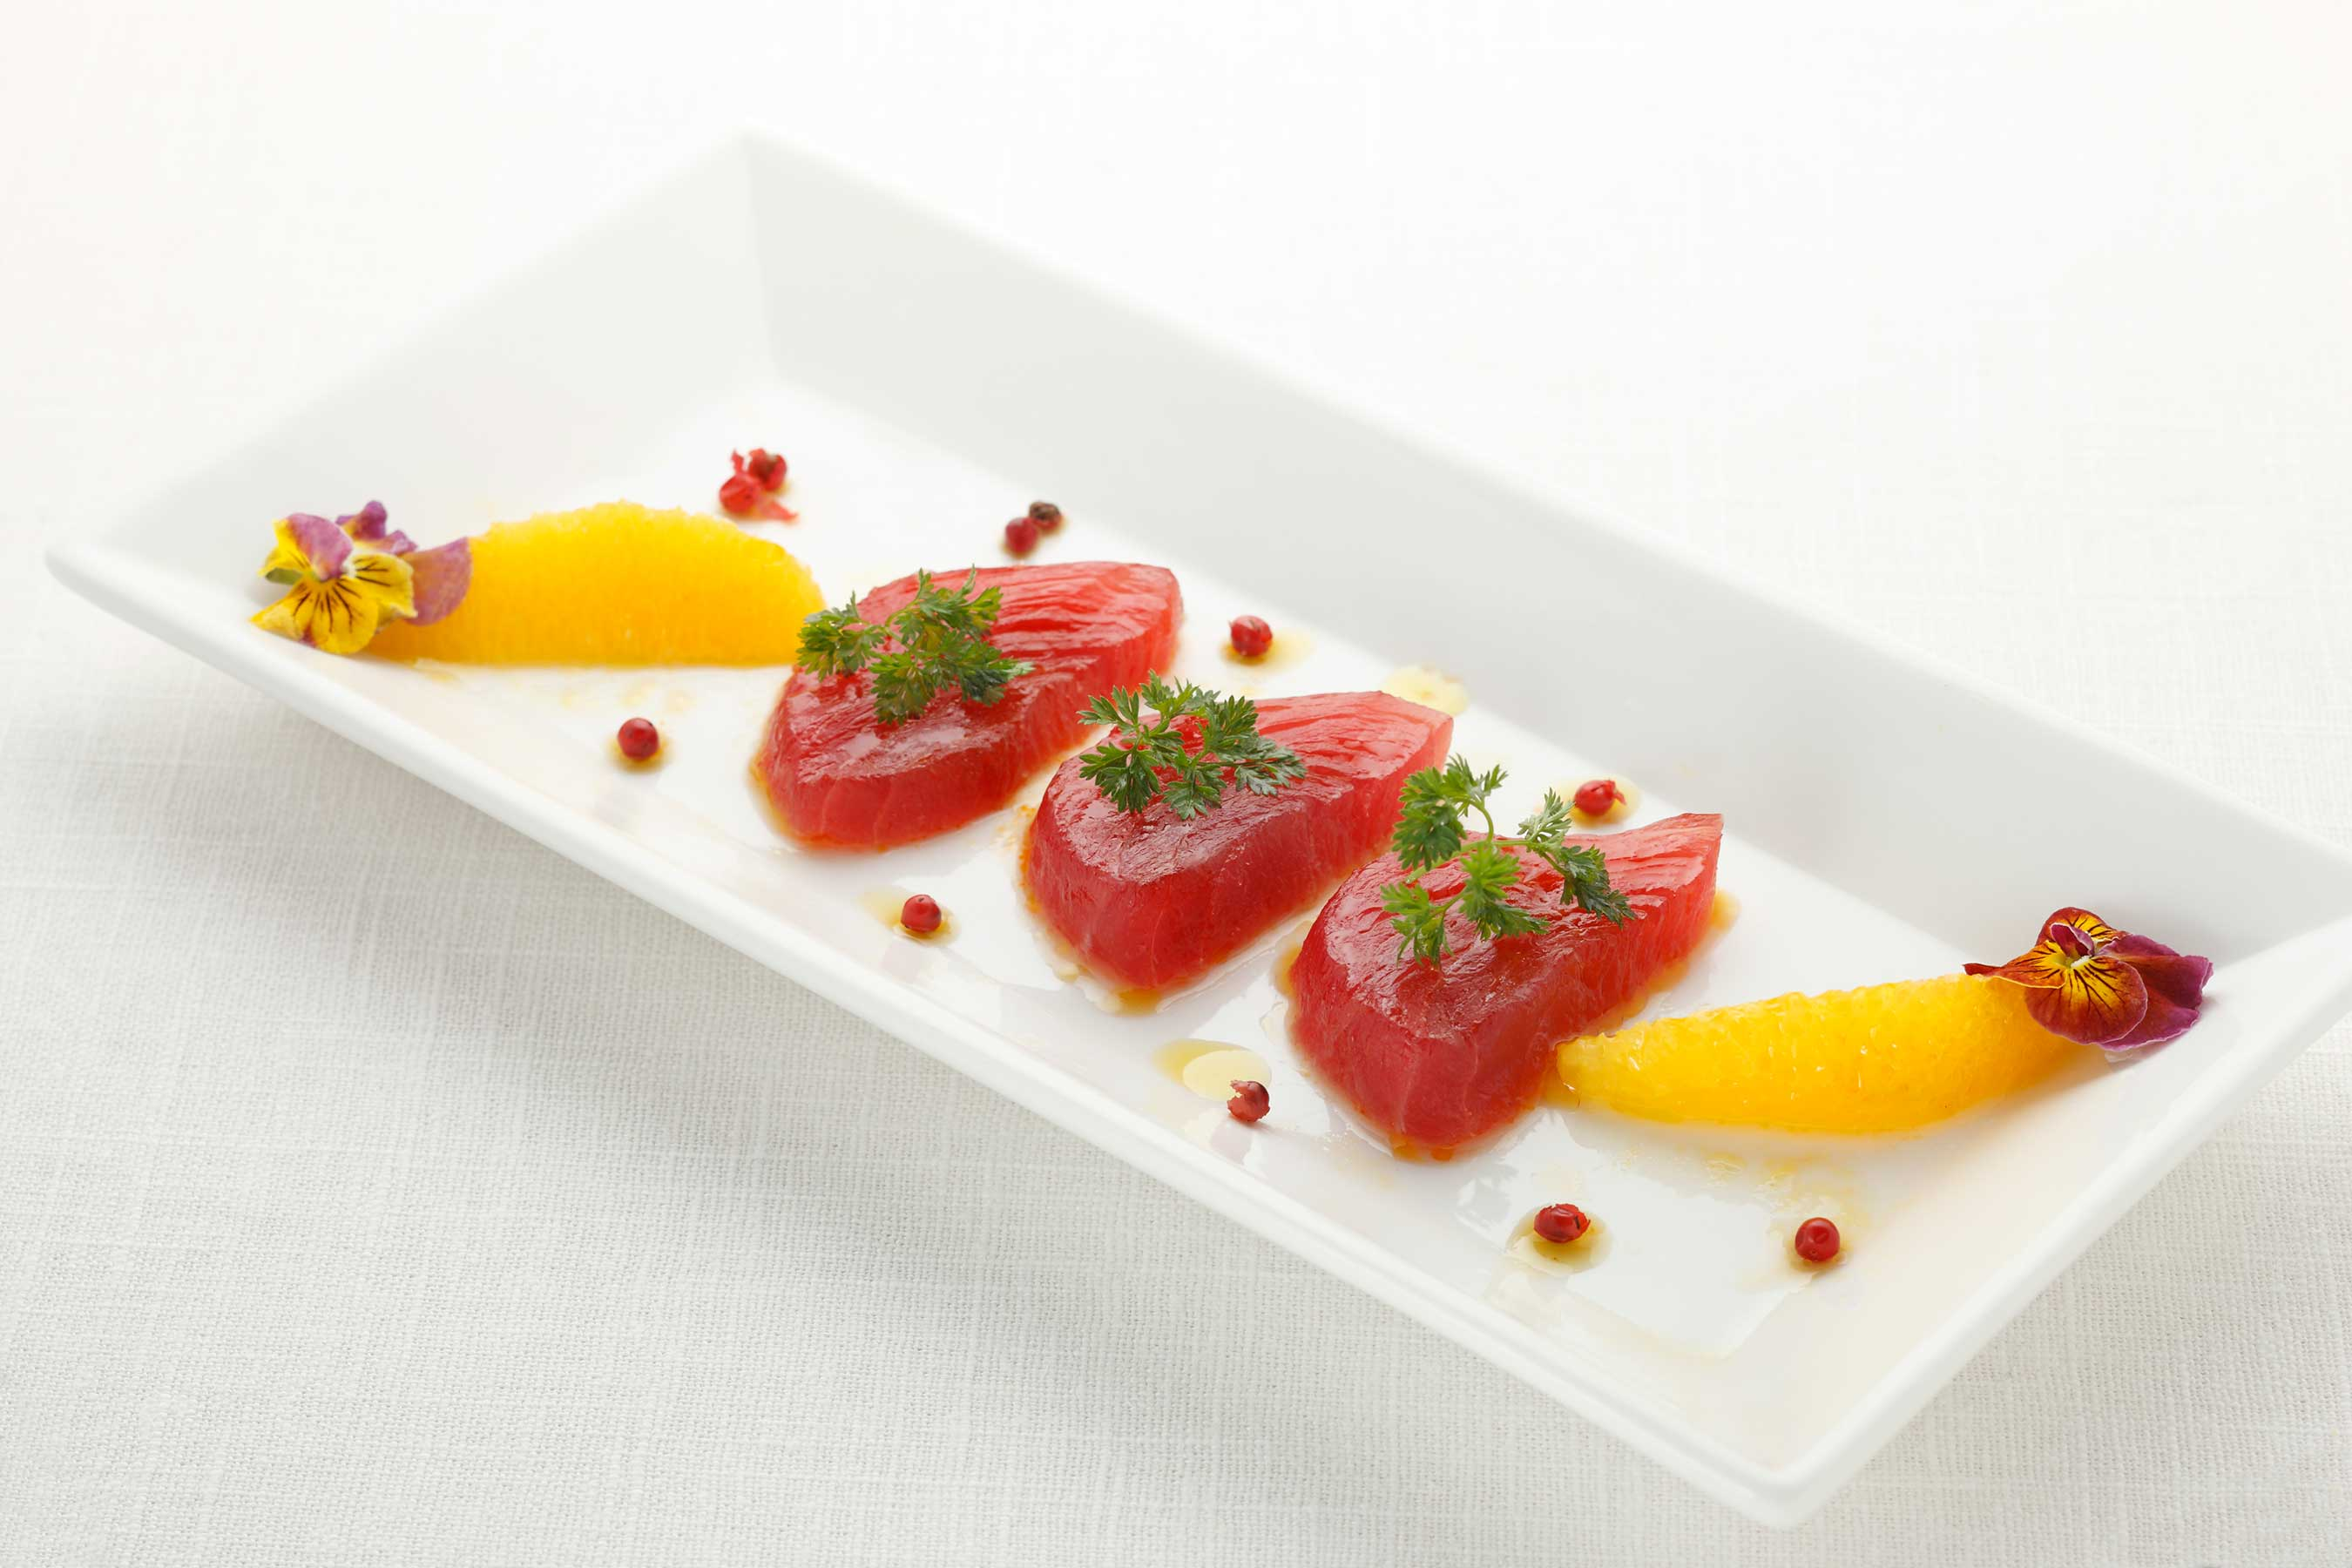 Sashimi lovers rejoice! LAGO's menu offers a drool-worthy selection of raw seafood prepared with an Italian flare like the succulent Tuna served with a seasonal citrus fruit.